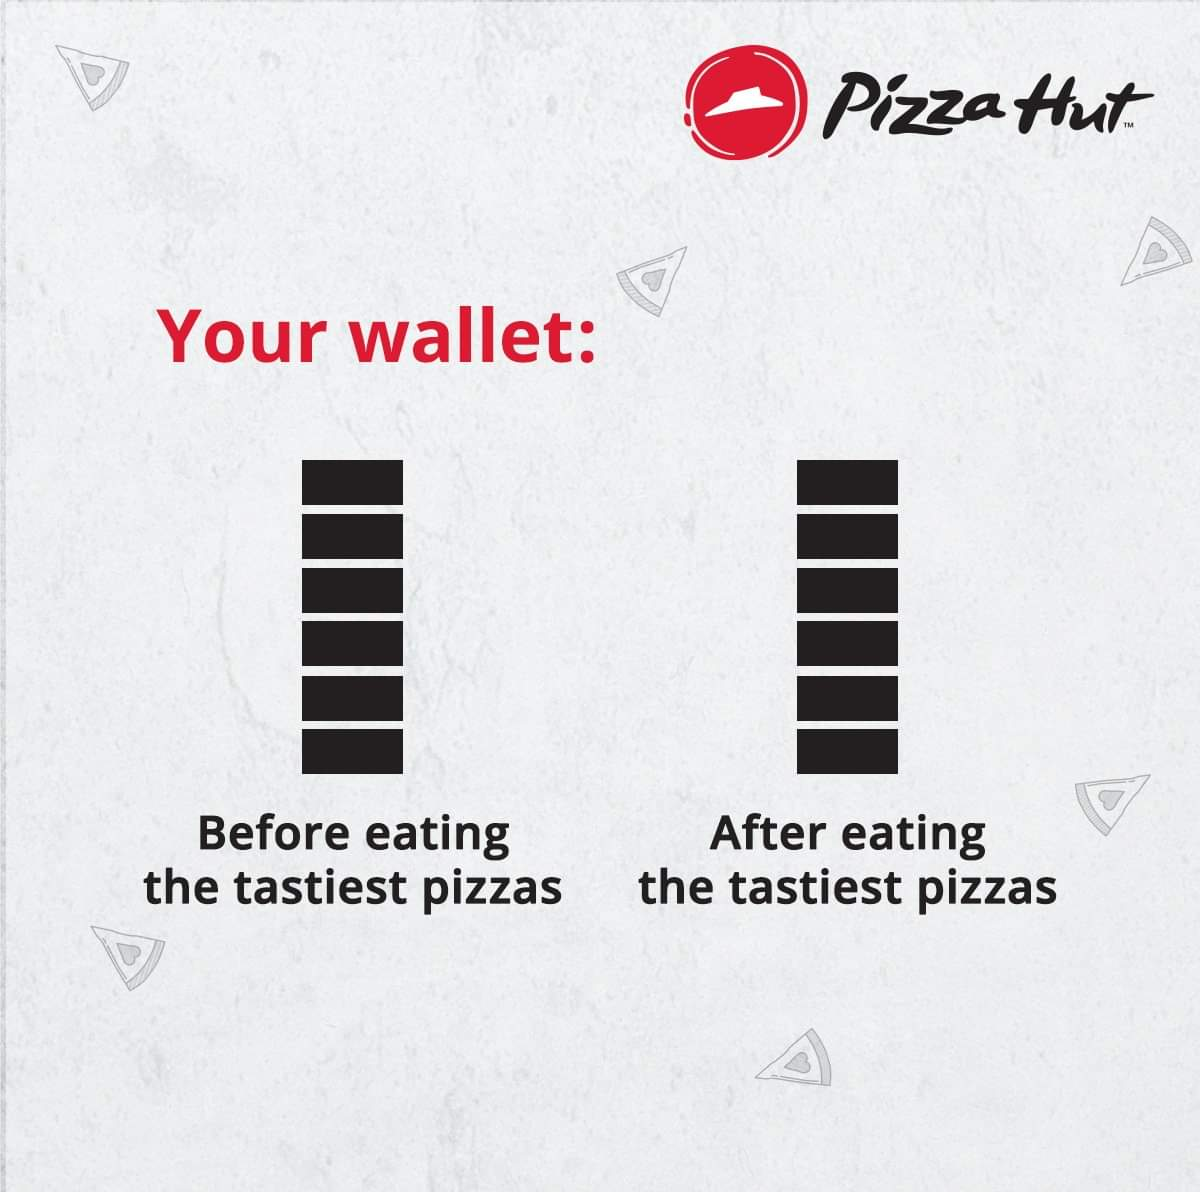 Needless to say, you get our tastiest pizzas at just Rs.99 Culturalimpact TastiestPizzasAt99 https t.co zTYHoVDwW9